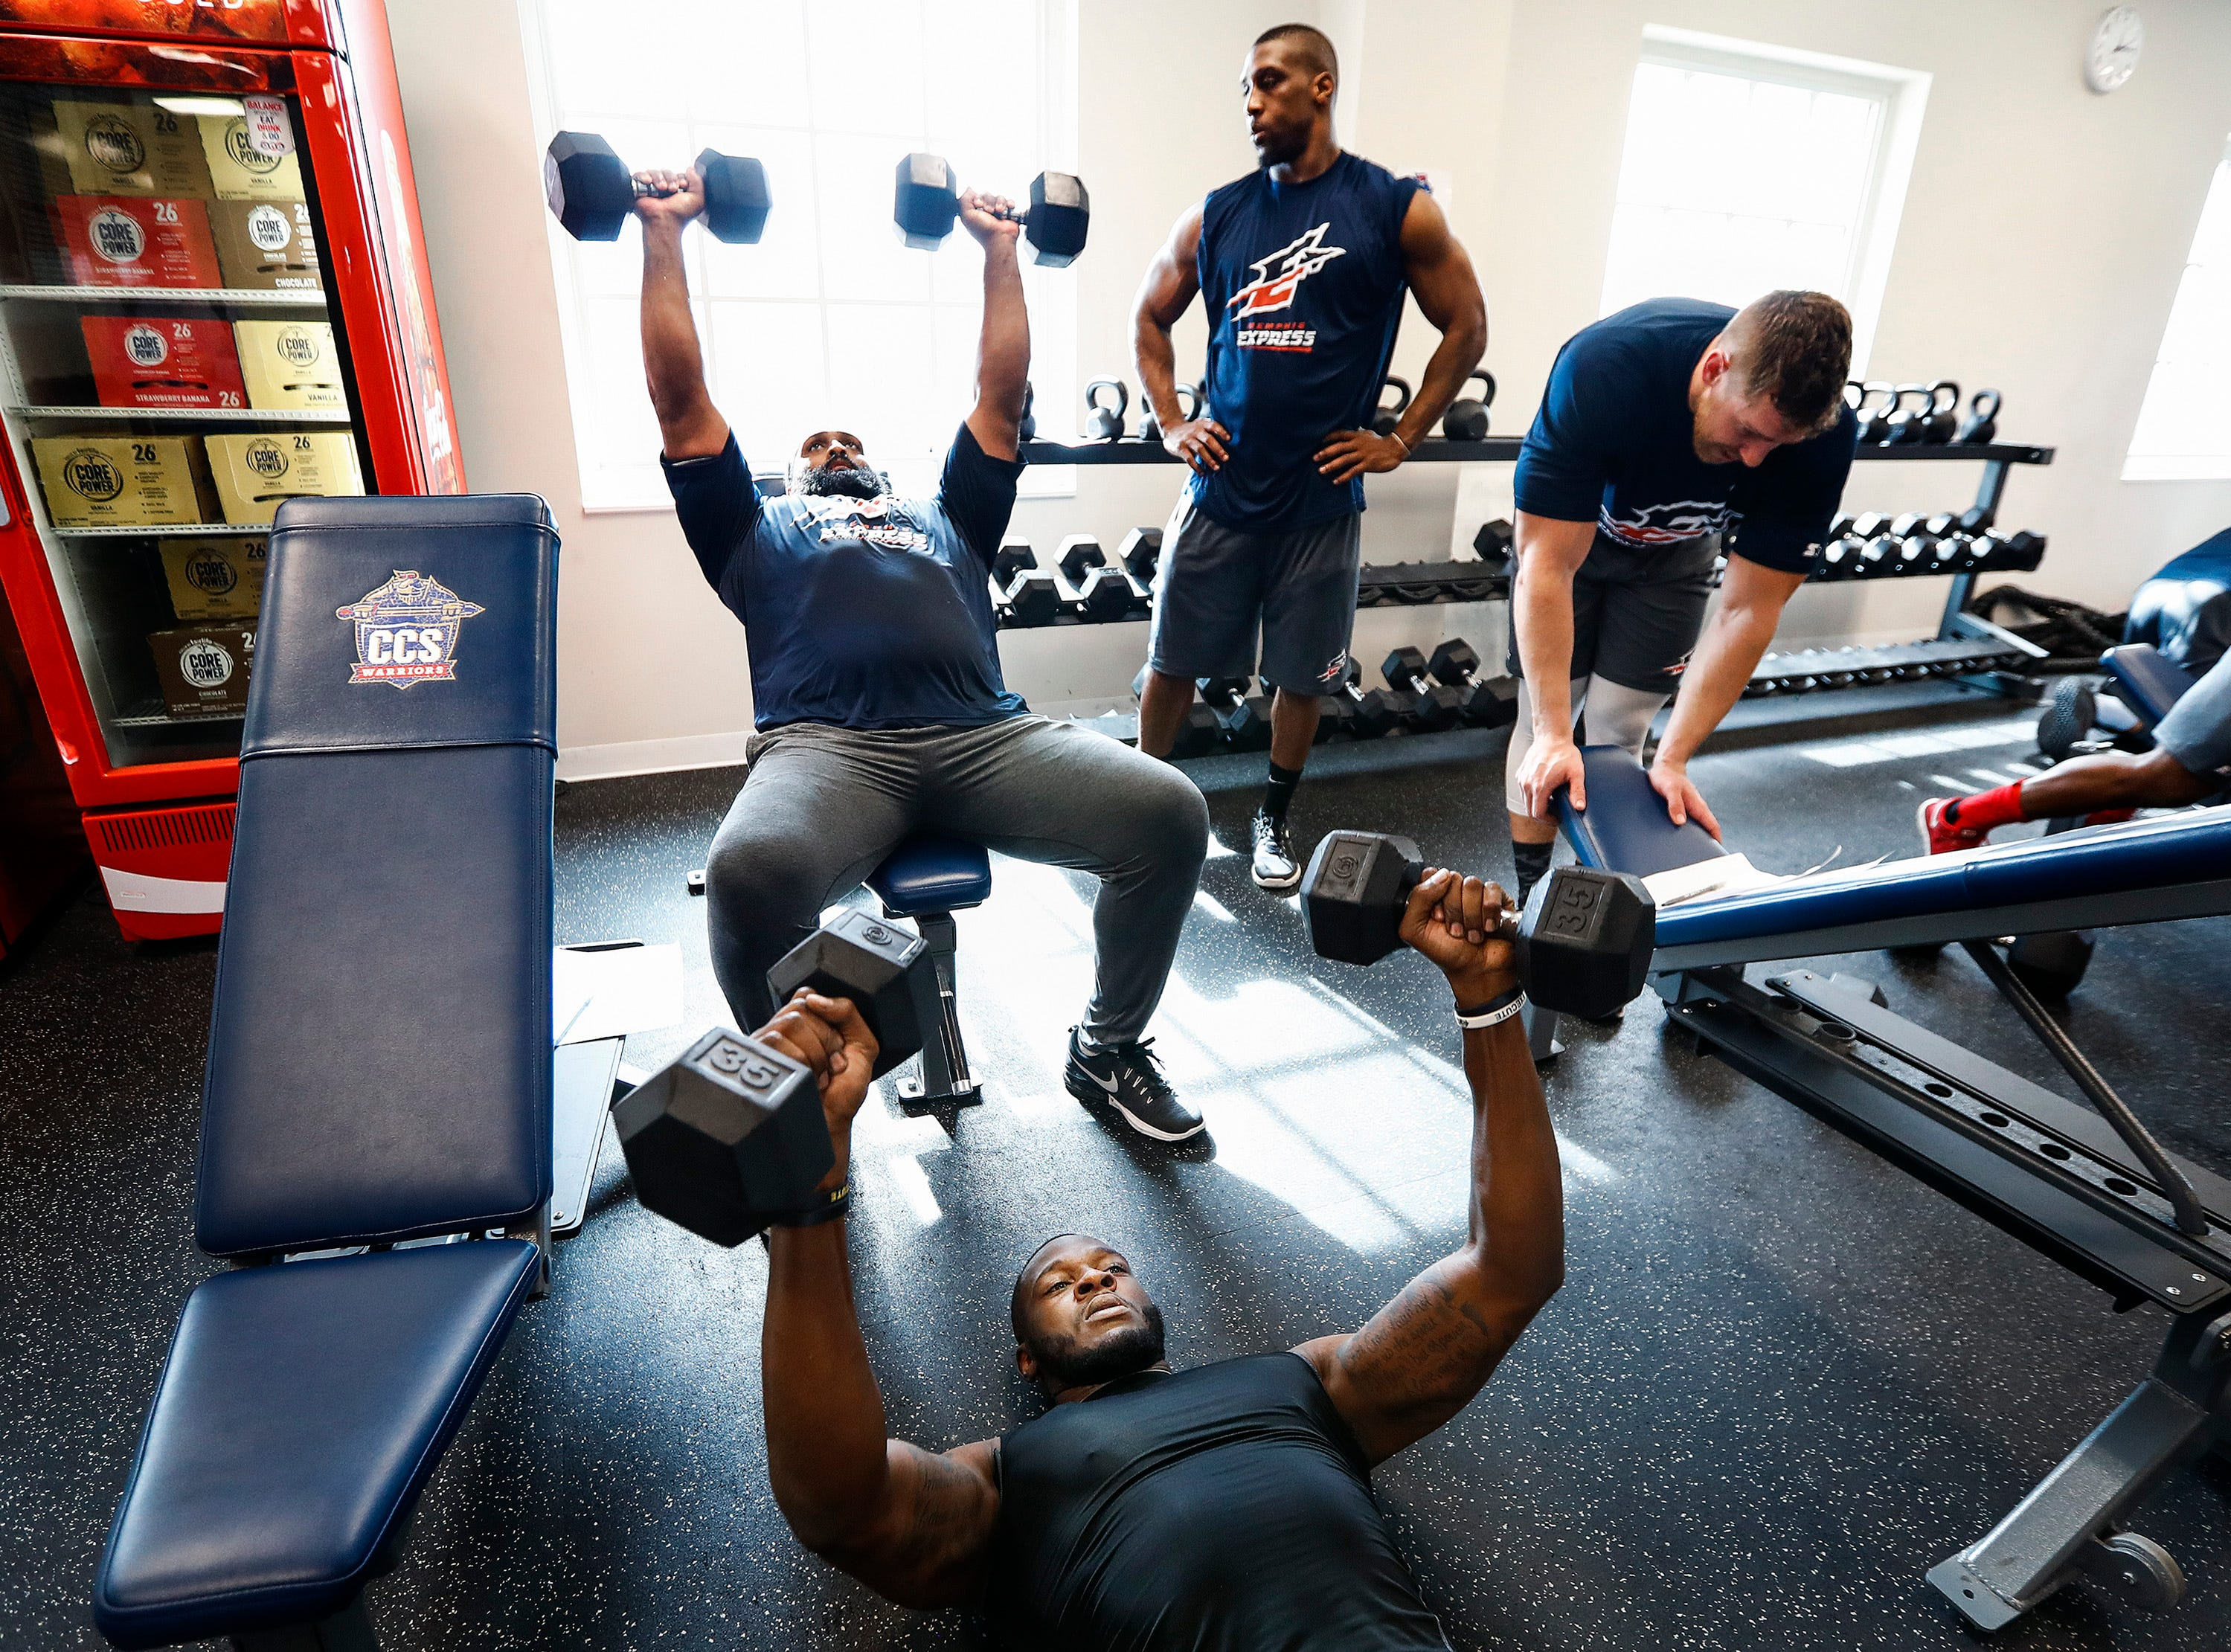 Memphis Express defensive team members lift weights during training camp in San Antonio, Texas.